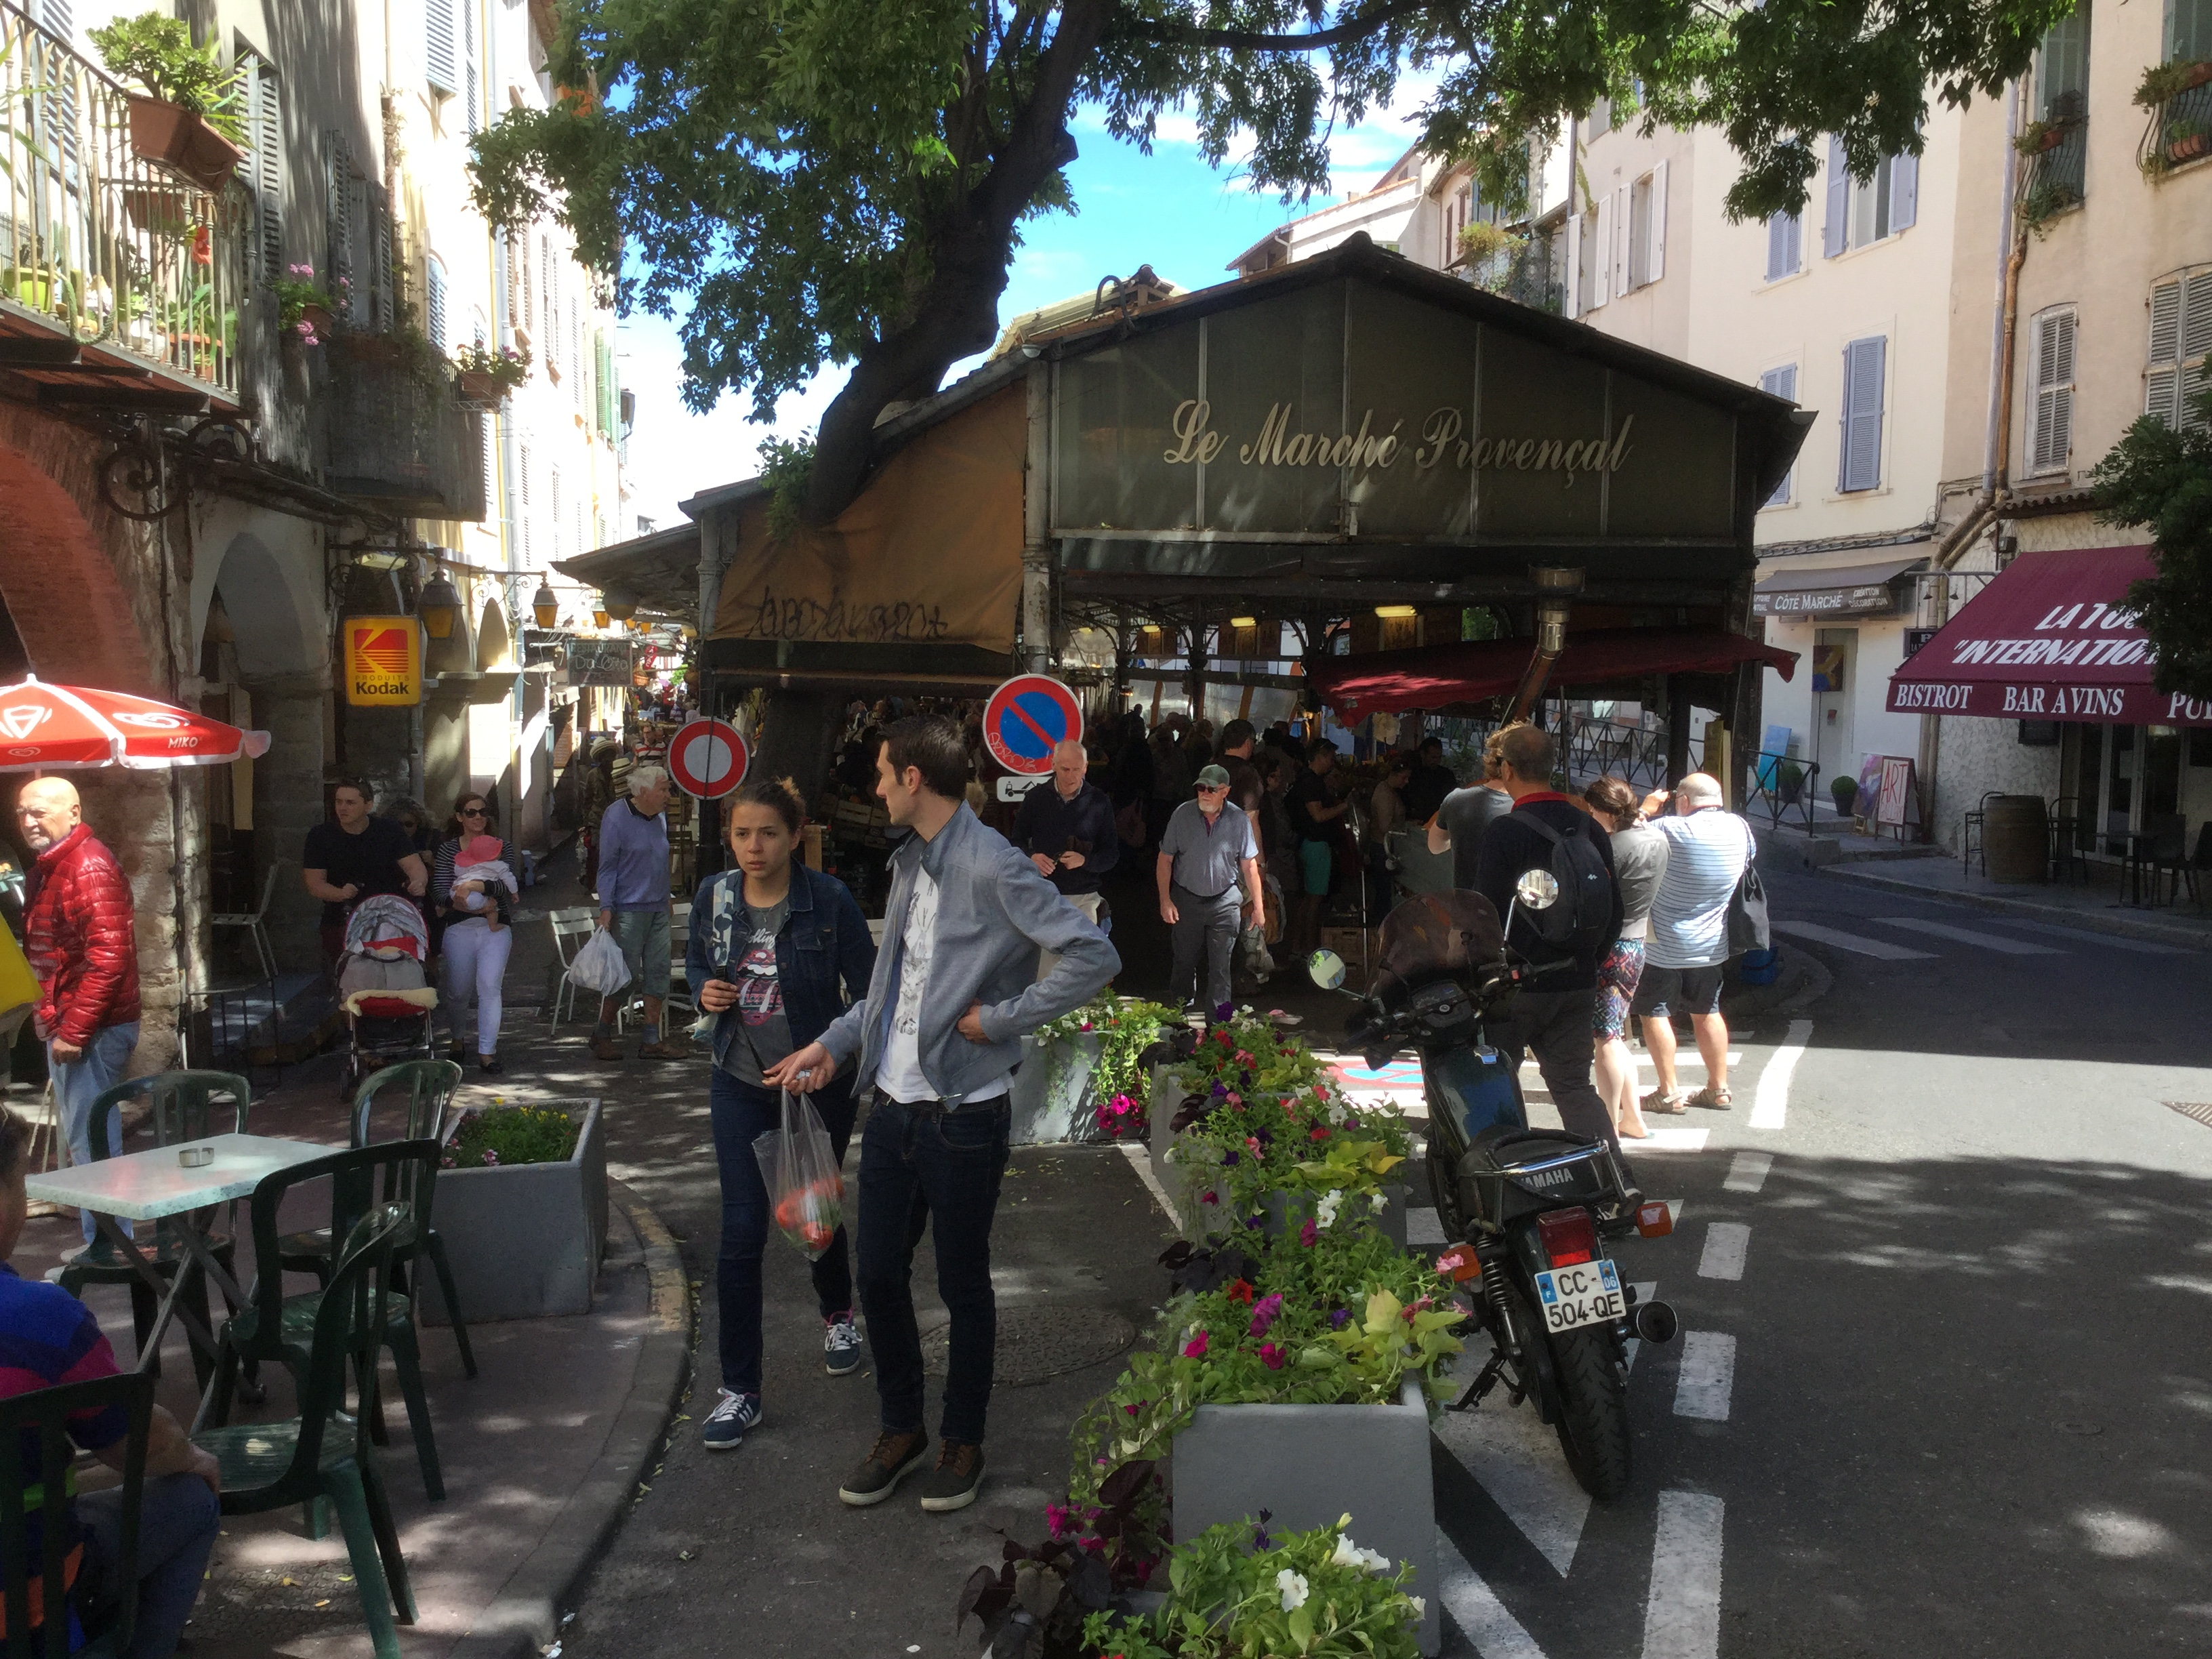 Marché_provencal_Antibes_1